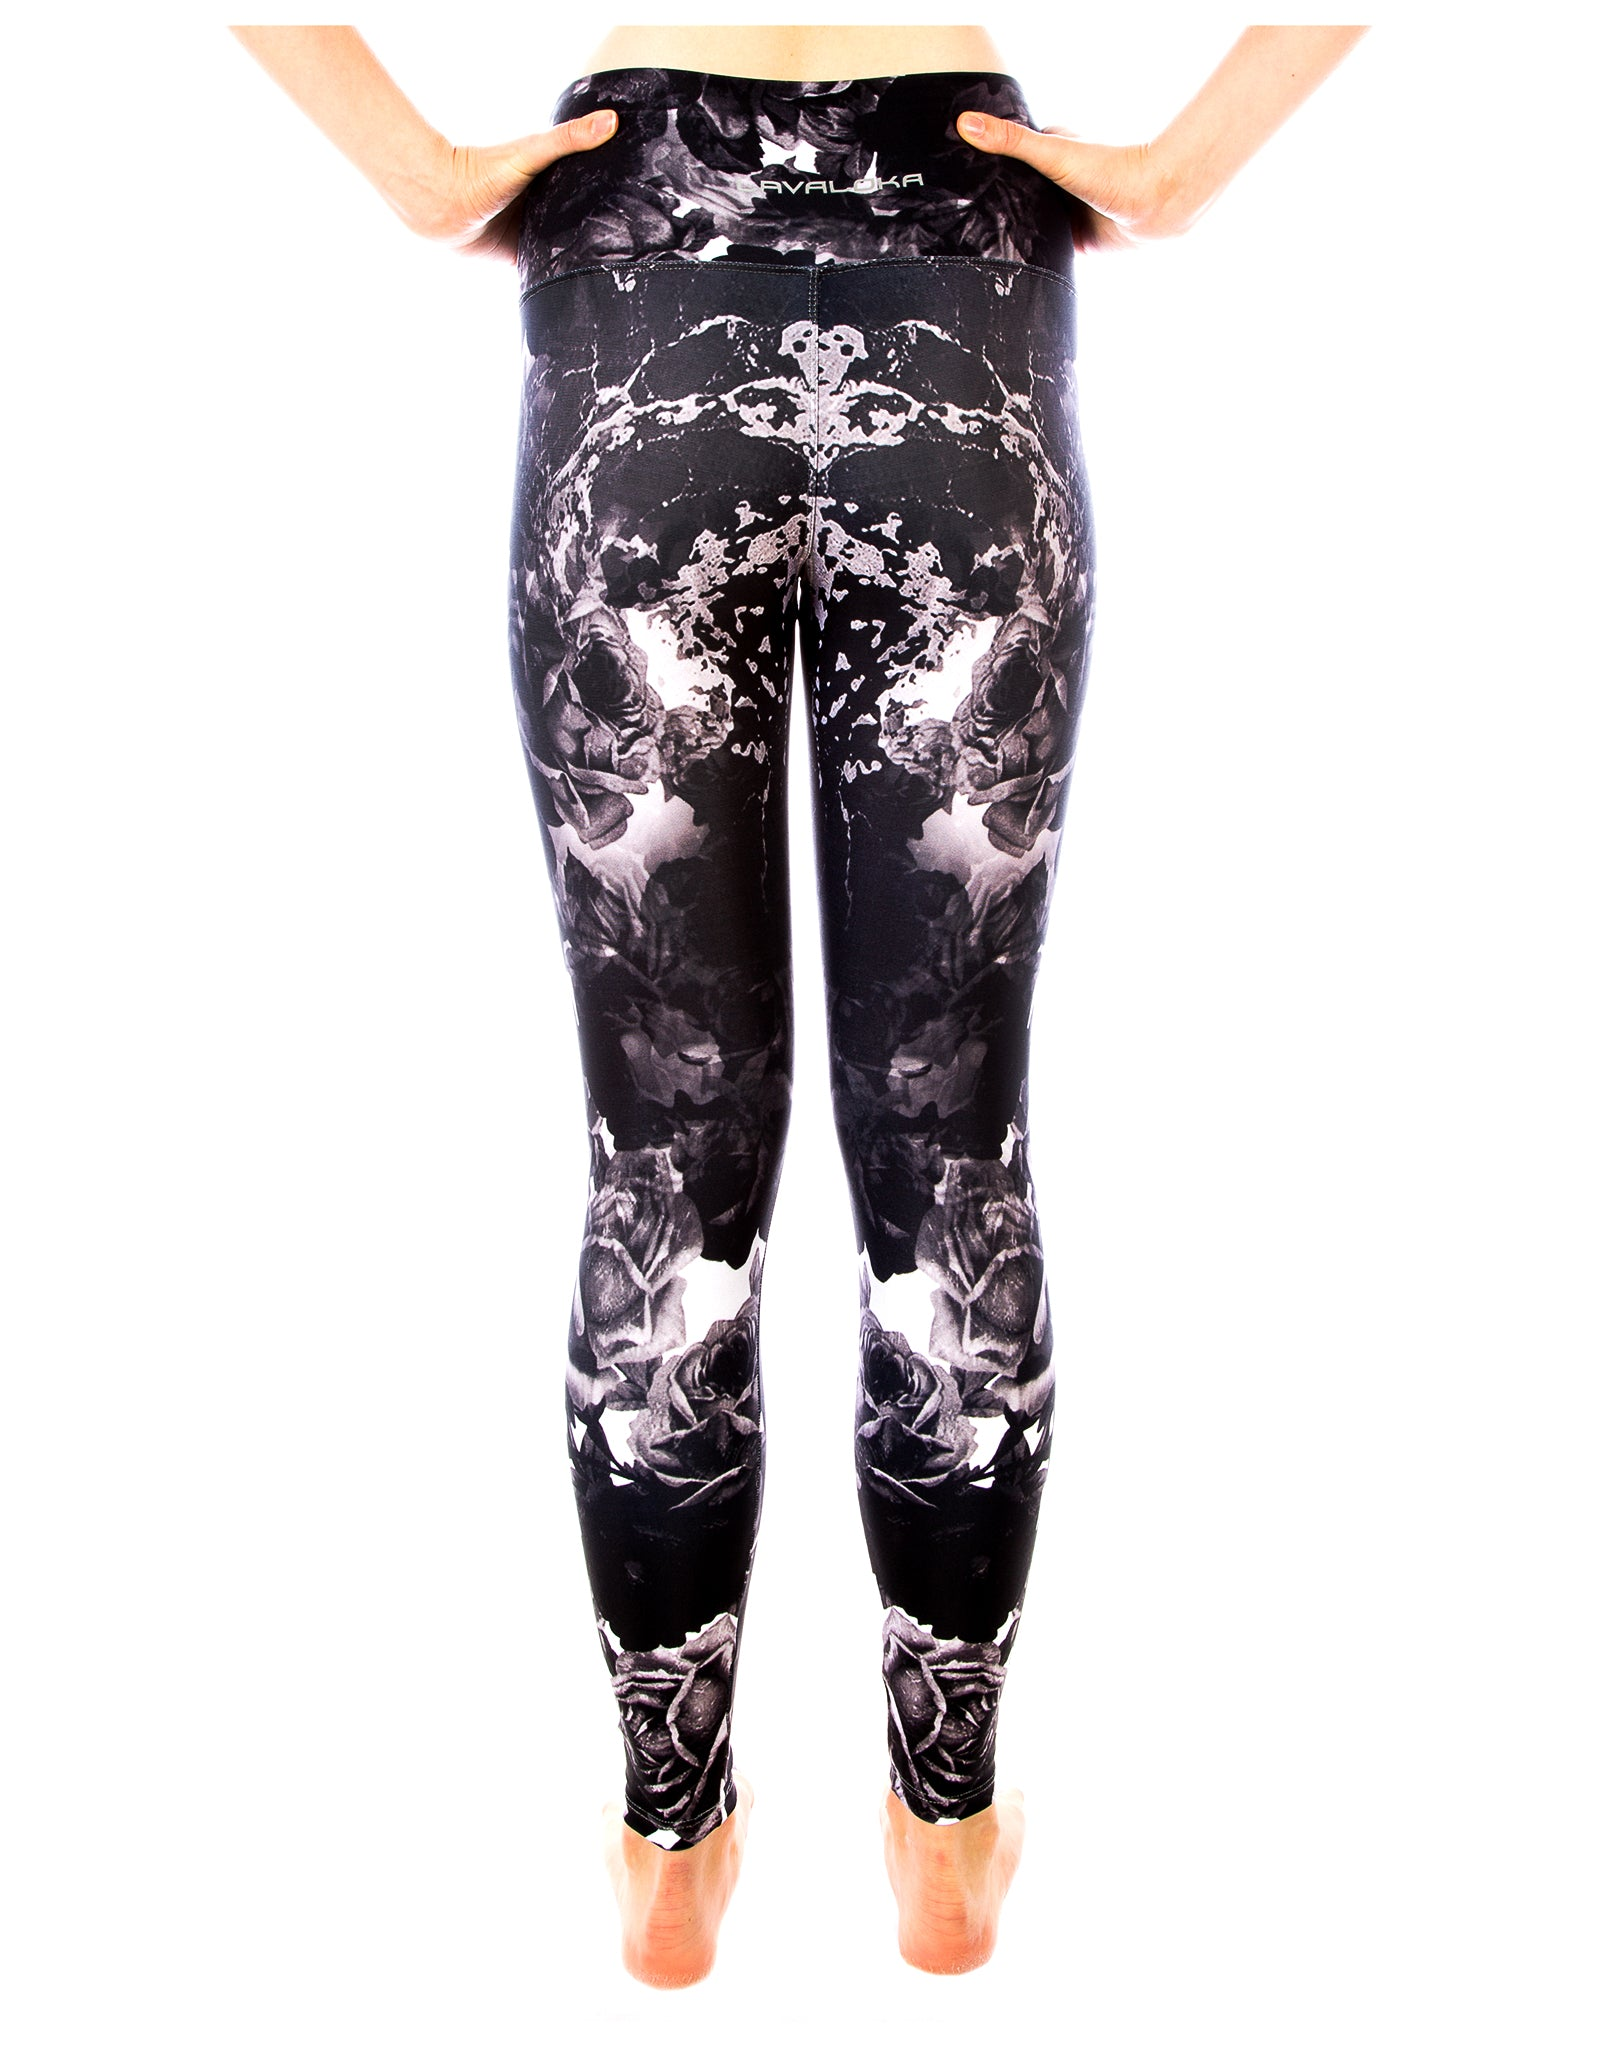 Black Ebony Rose Yoga Pants